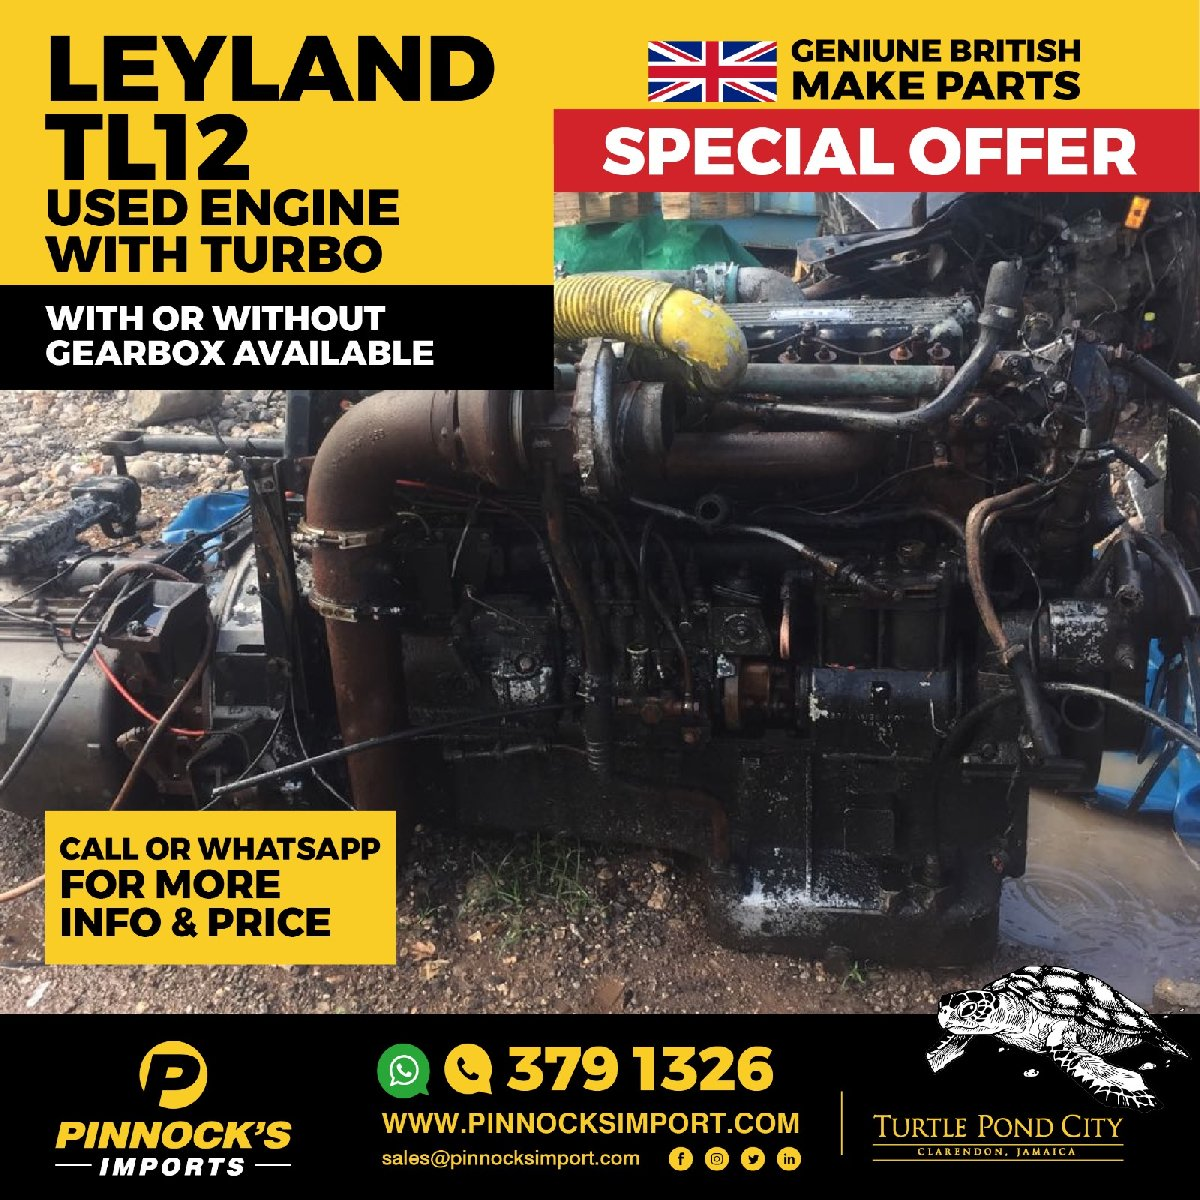 Homes For Rent Search Engine: LEYLAND TL12 USED ENGINE WITH TURBI For Sale In Available